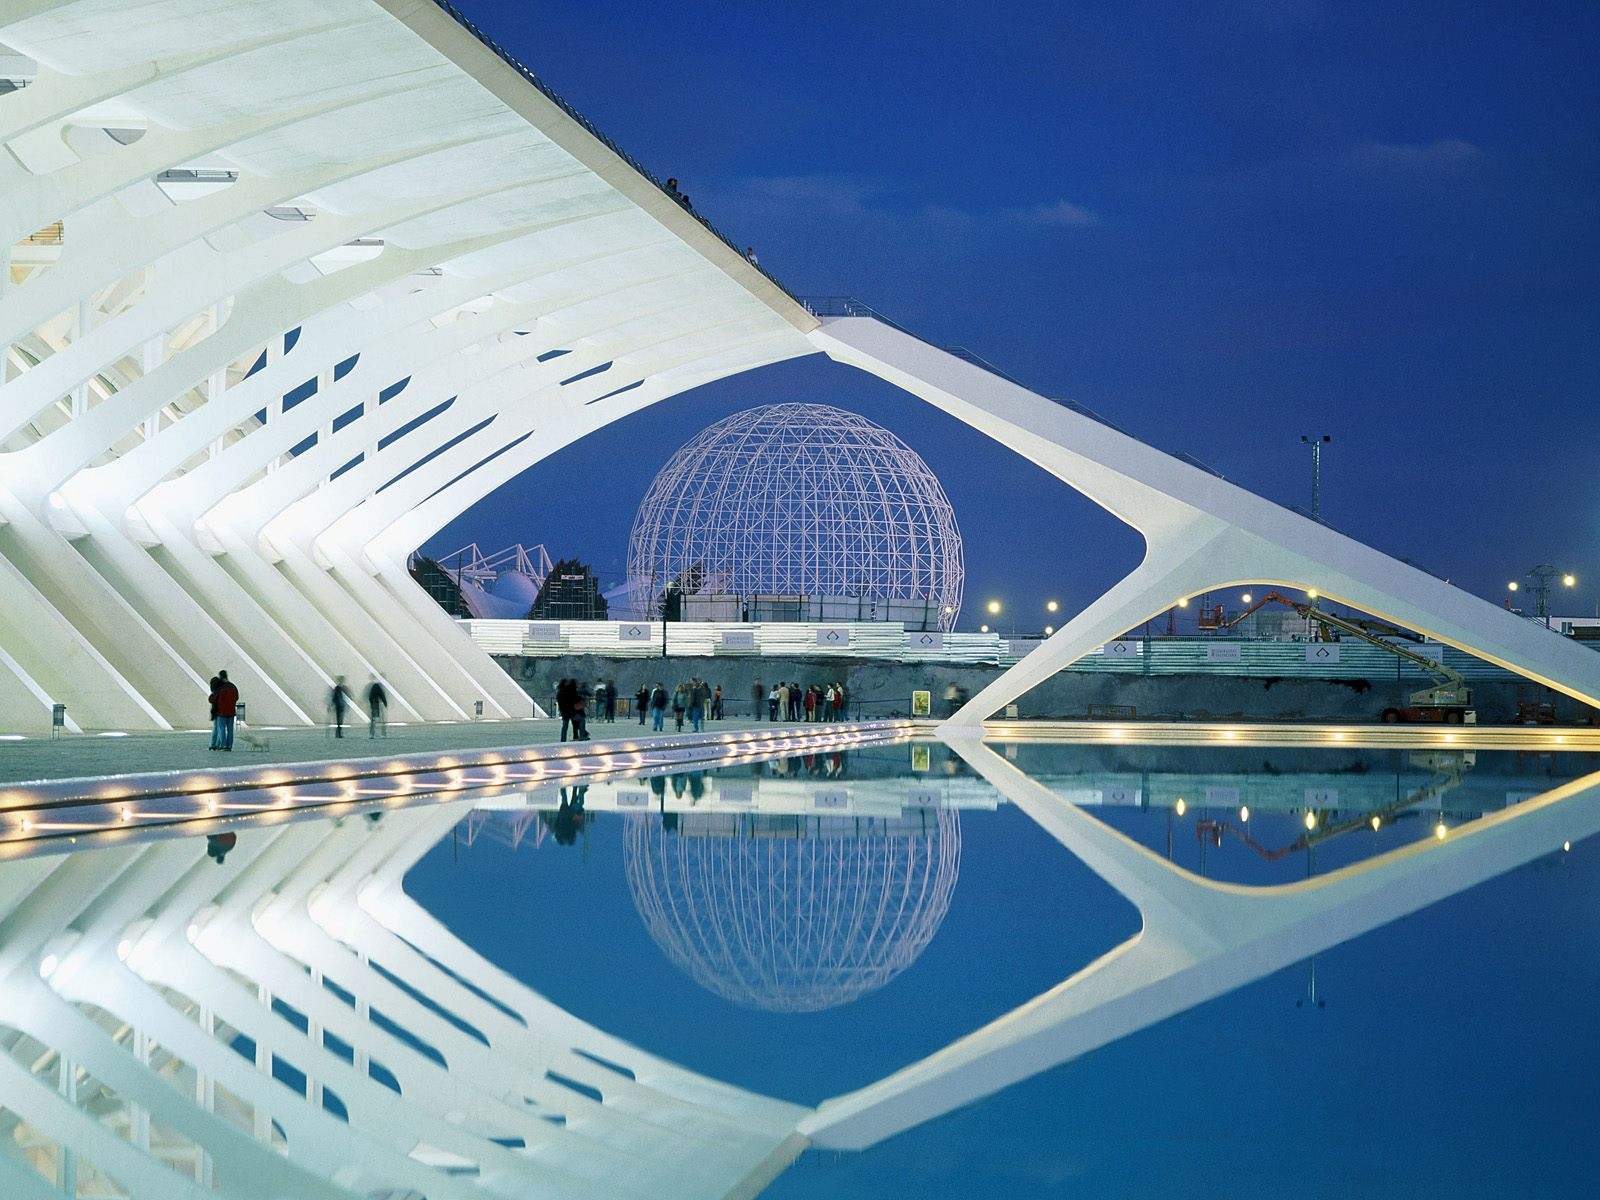 City of Arts and Sciences Spain 392.66 Kb